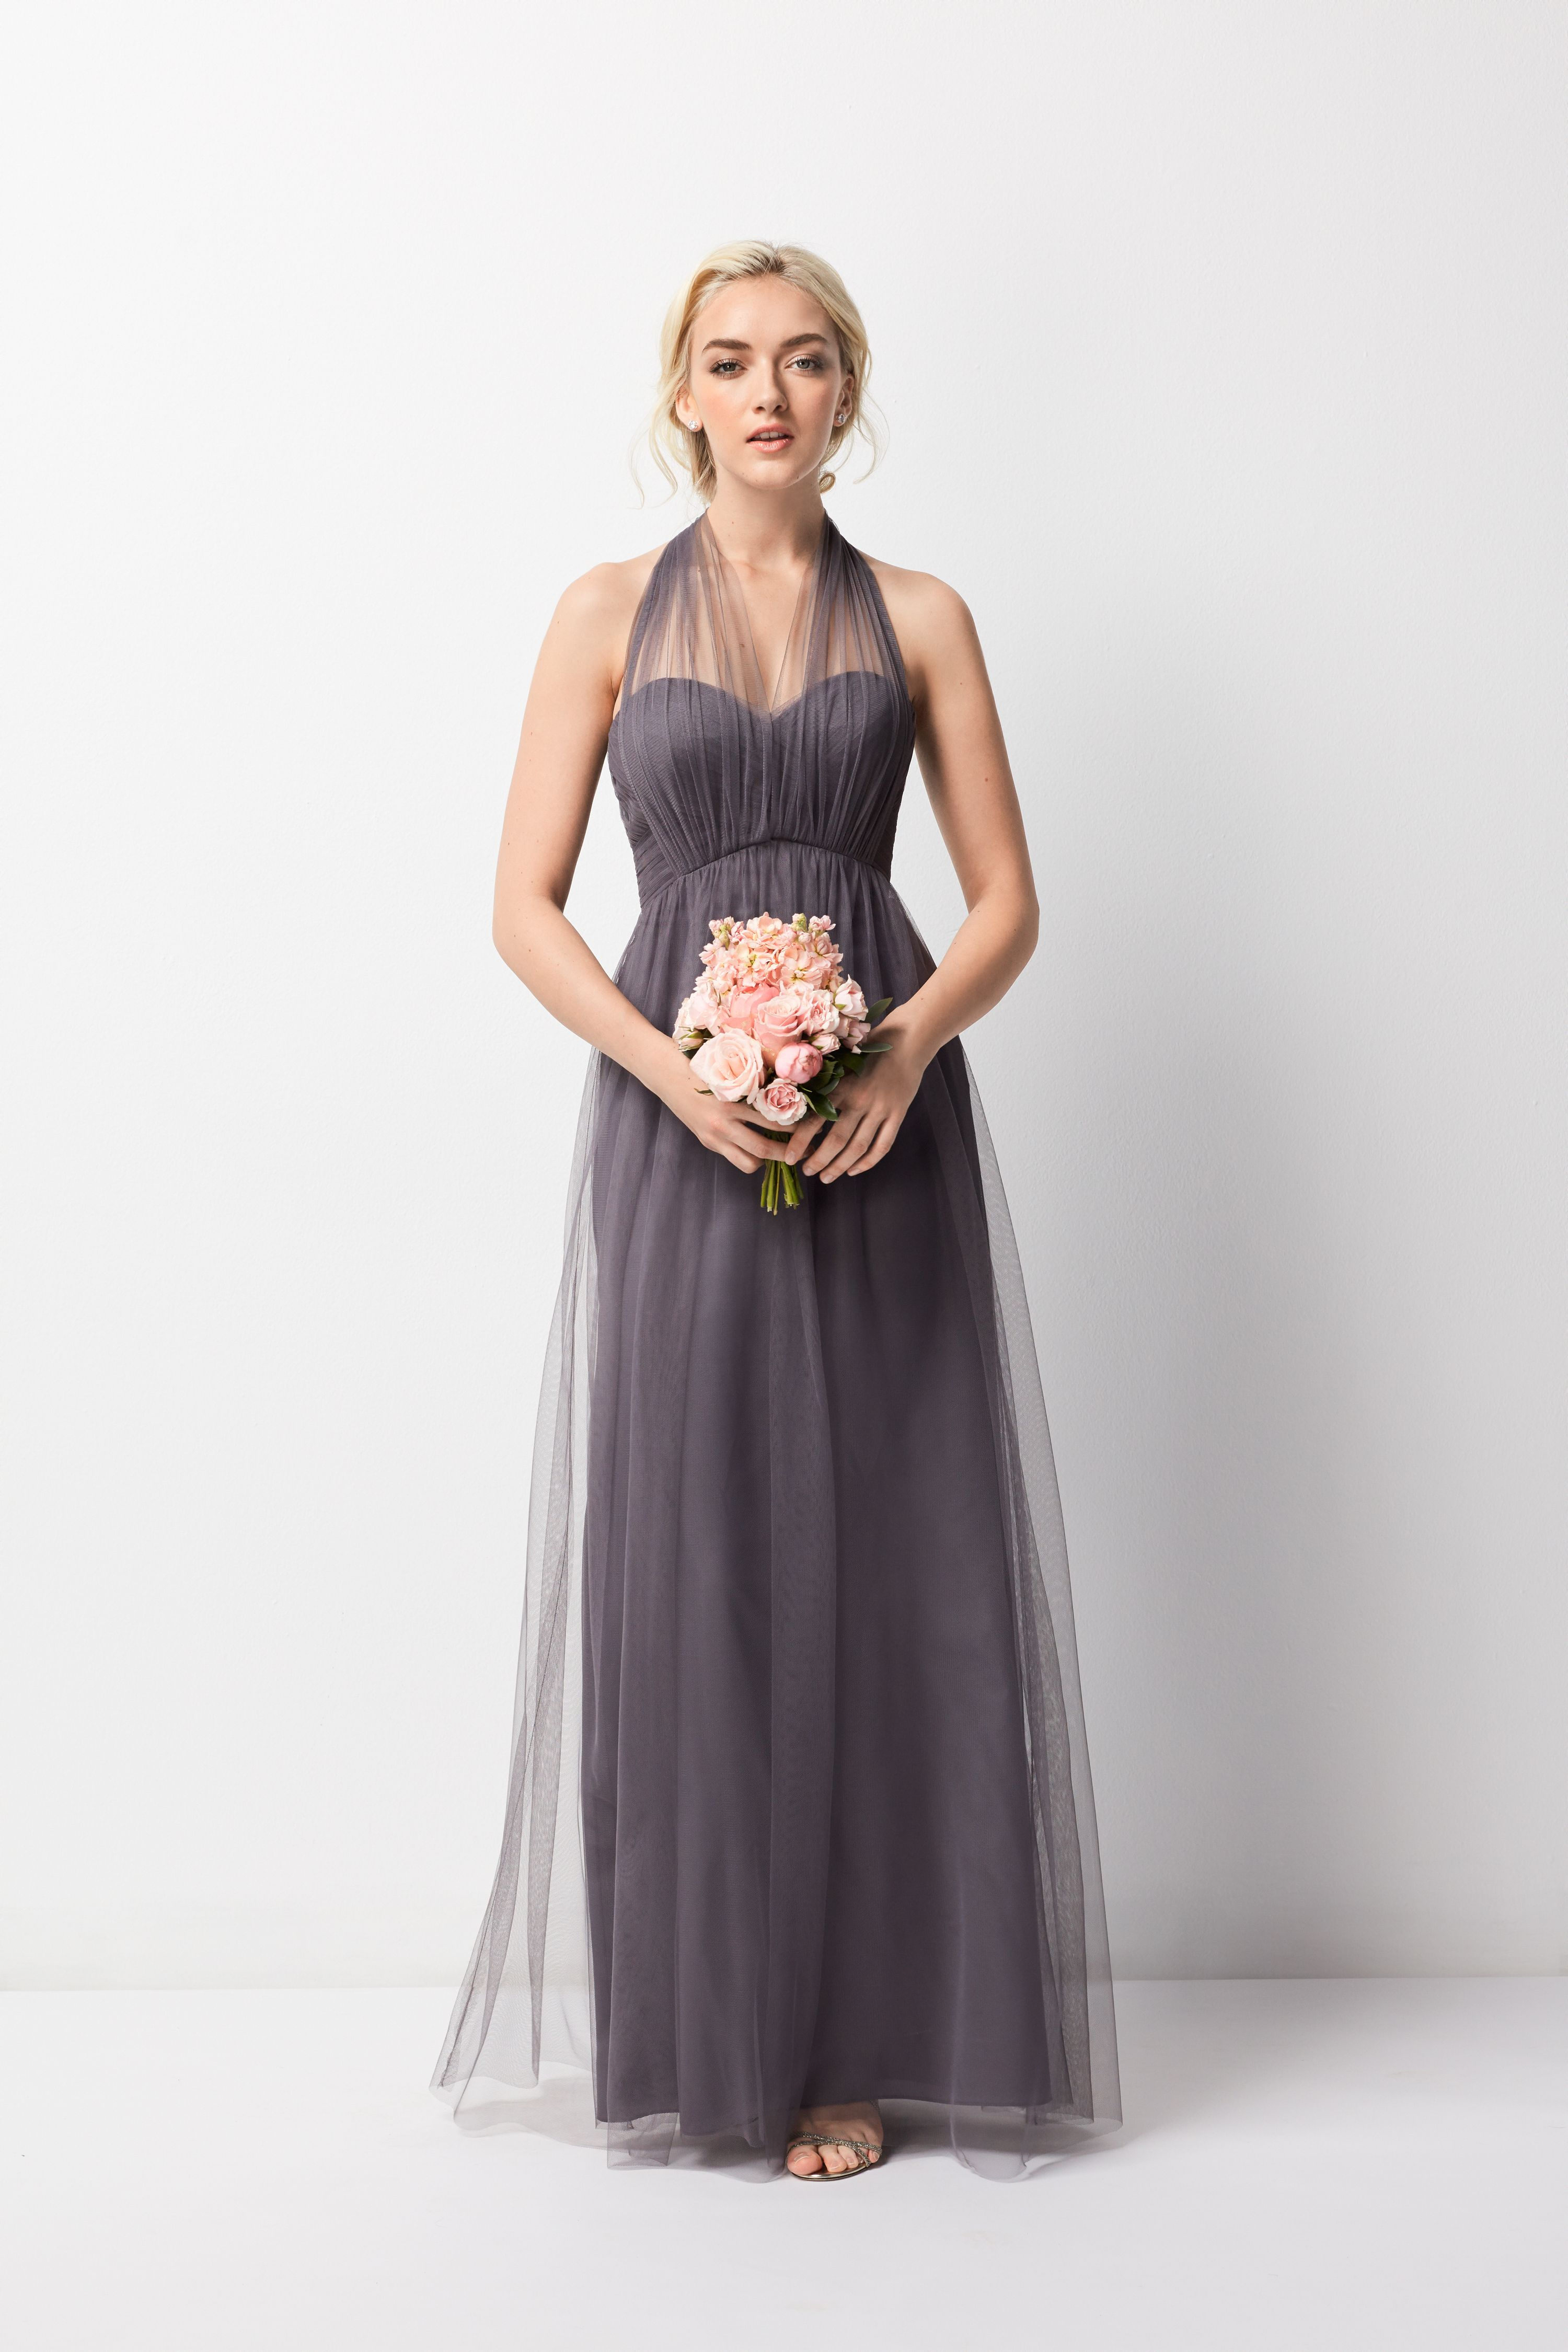 Watterswtoo bridesmaids dress style 245 with infinity straps watterswtoo bridesmaids dress style 245 with infinity straps ombrellifo Gallery